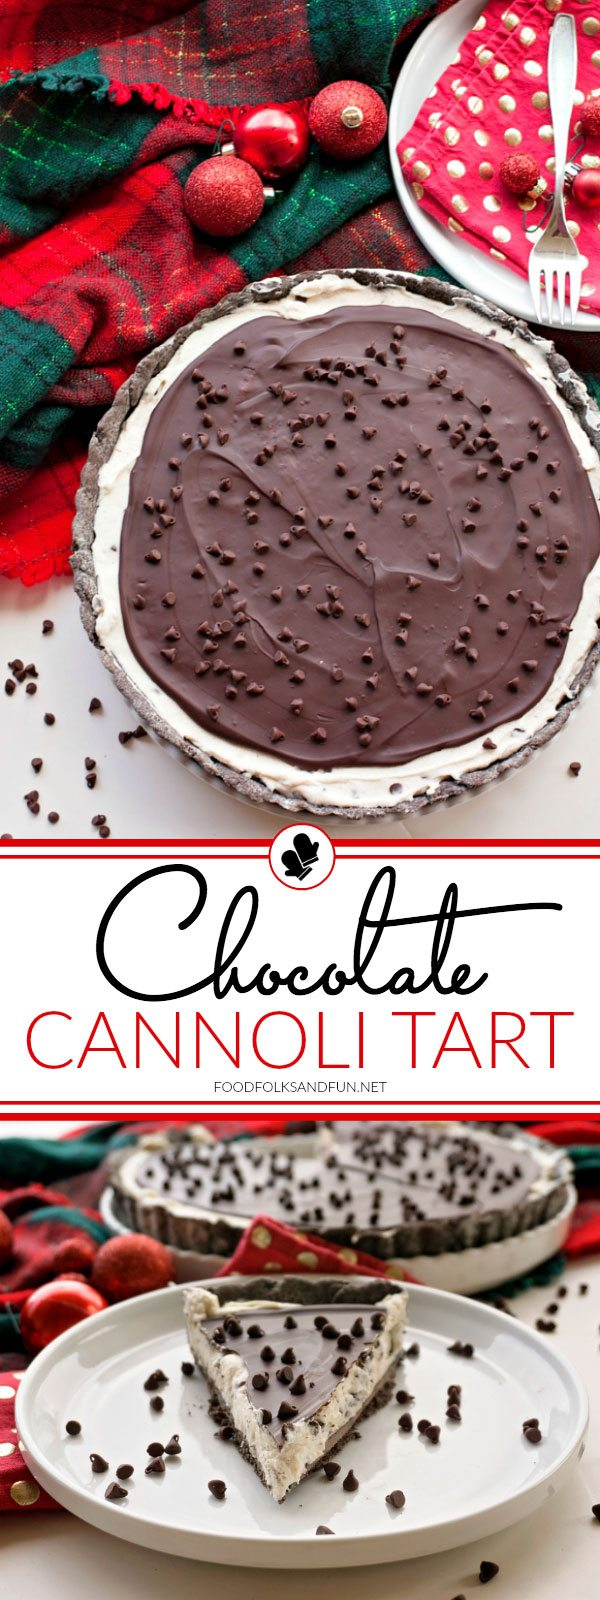 This Chocolate Cannoli Tart has all the luscious flavor of a chocolate cannoli in an easy to make tart. It's all dressed up andperfect for holiday entertaining or any time of the year. via @foodfolksandfun